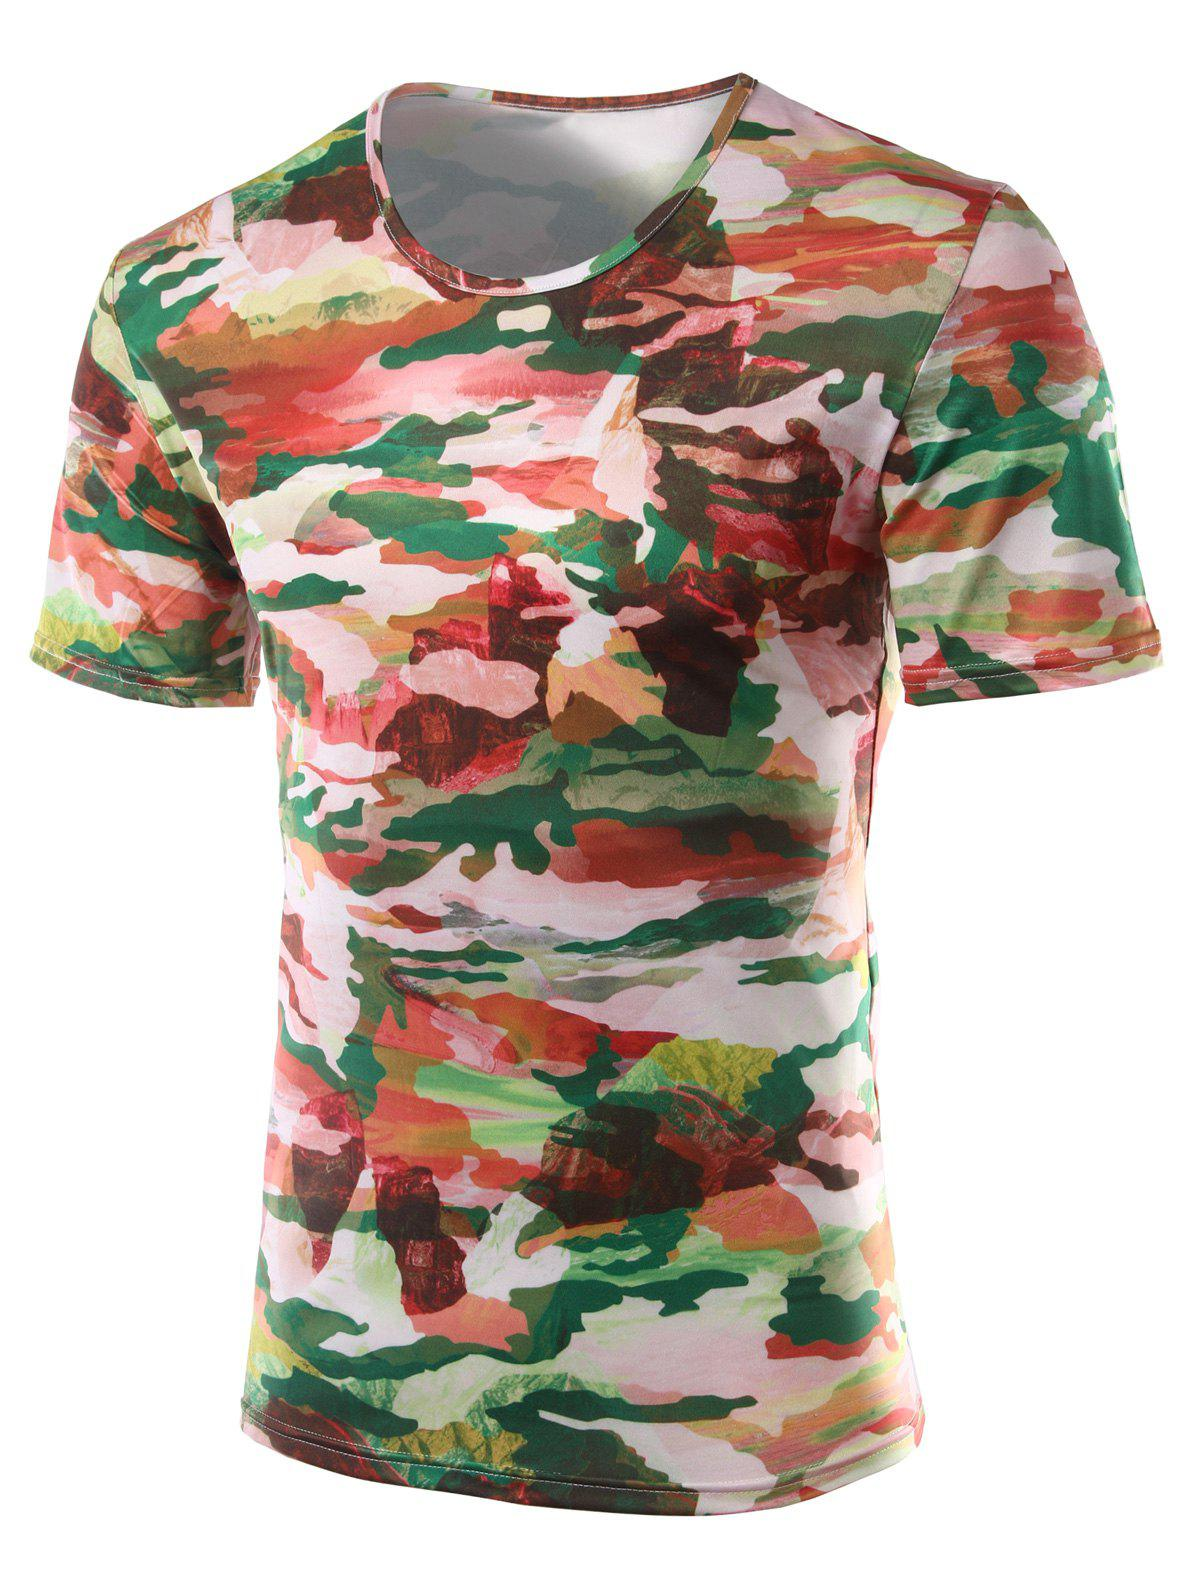 Slim Fit Printed Round Collar Short Sleeves T-Shirts For Men - COLORMIX M